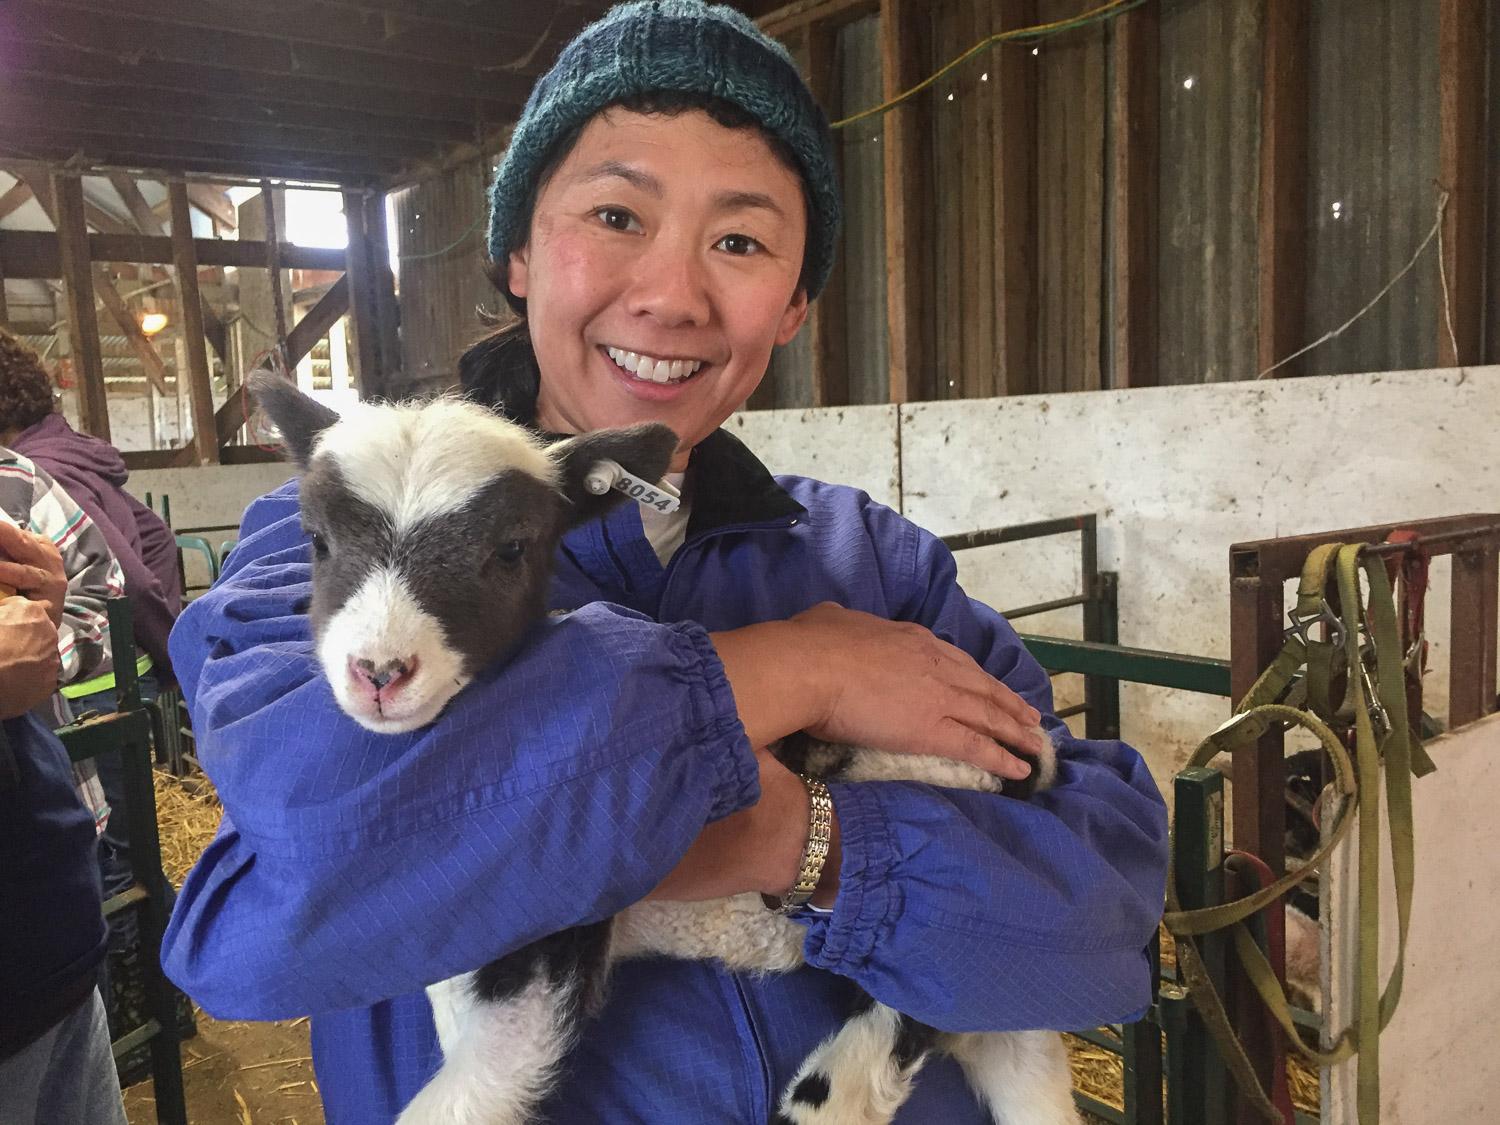 Sumi holding a Jacob lamb named Zorra.